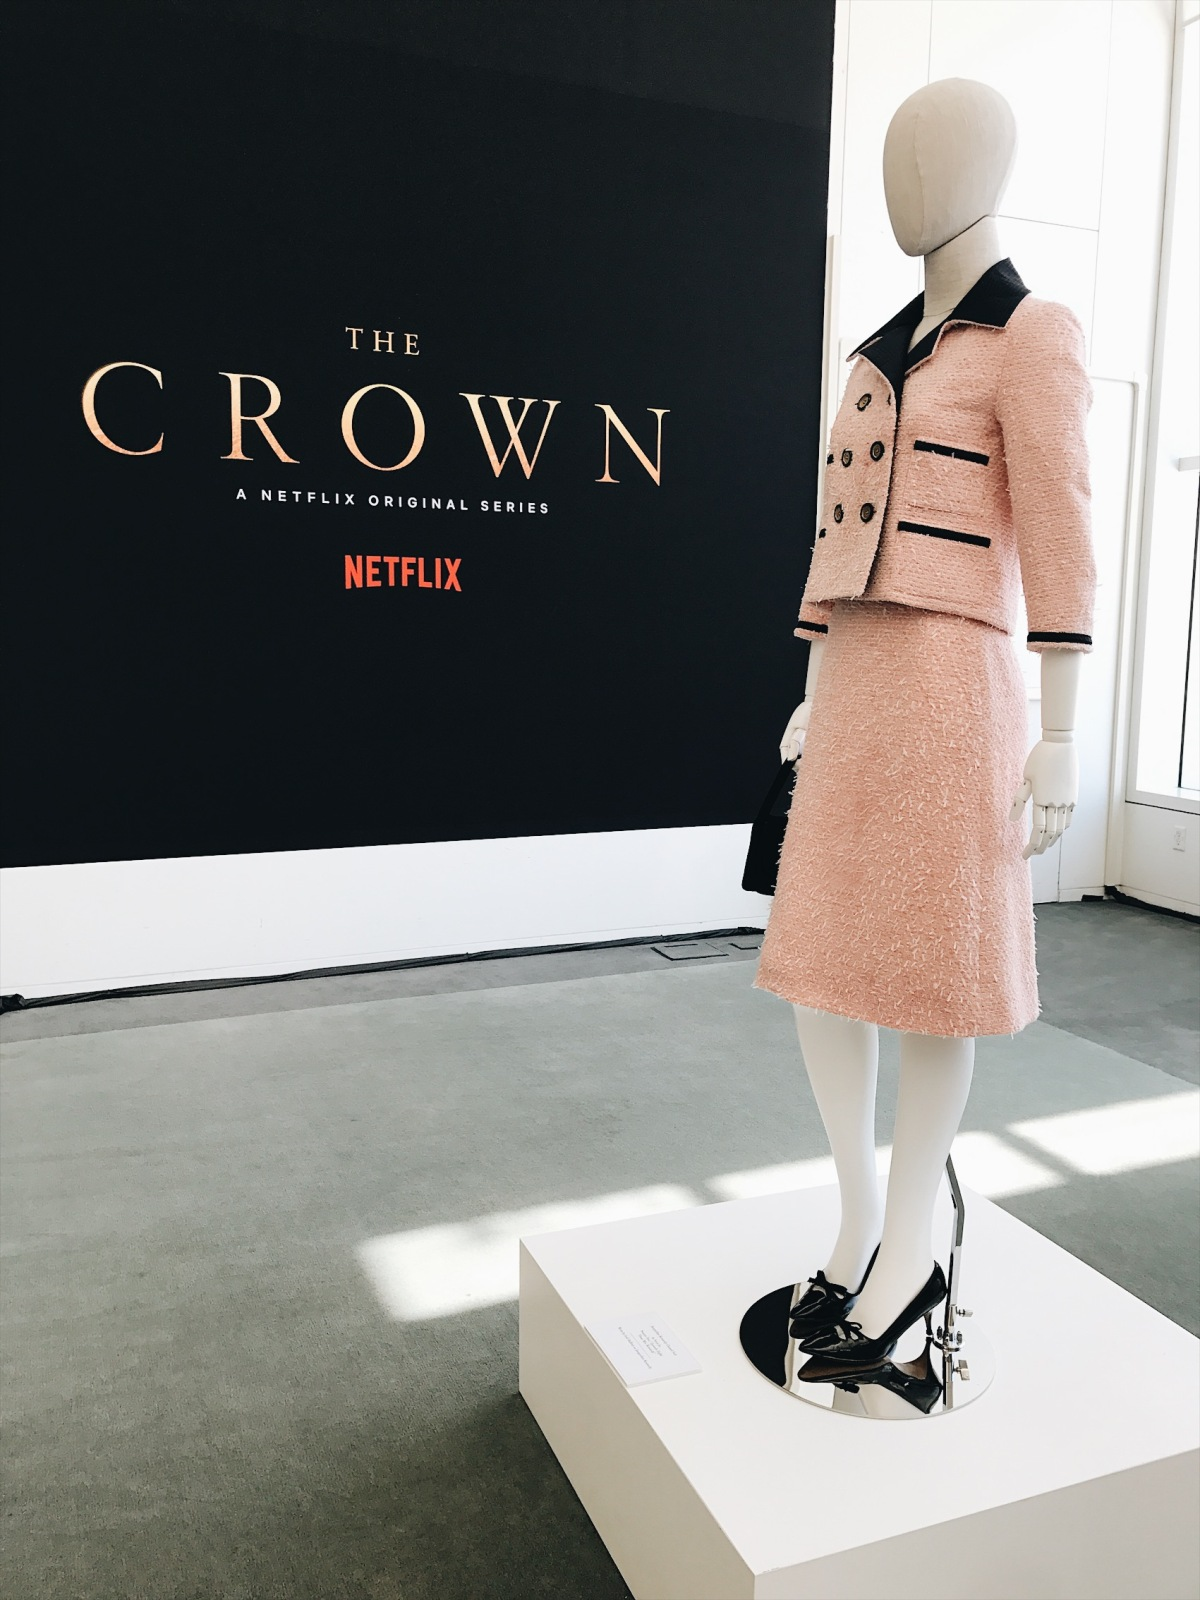 The Crown, Netflix's The Crown, Claire Foy, Matt Smith, Vanessa Kirby, Matthew Goode, Michele Clapton, costume design, Paley Center for Media, Beverly Hills, television costume design, Windsor family, The Royal Family, Gal Meets Glam collection, Louis Vuitton, gingham dress, vintage fashion, fifties fashion, mid-century fashion, forties fashion, lookbook, fashion blogger, red lips, outfit of the day, ootd, summer fashion, museum exhibition, fashion exhibition, Jackie Kennedy, Jackie-O, Jacqueline Kennedy, Queen Elizabeth II, Princess Margaret